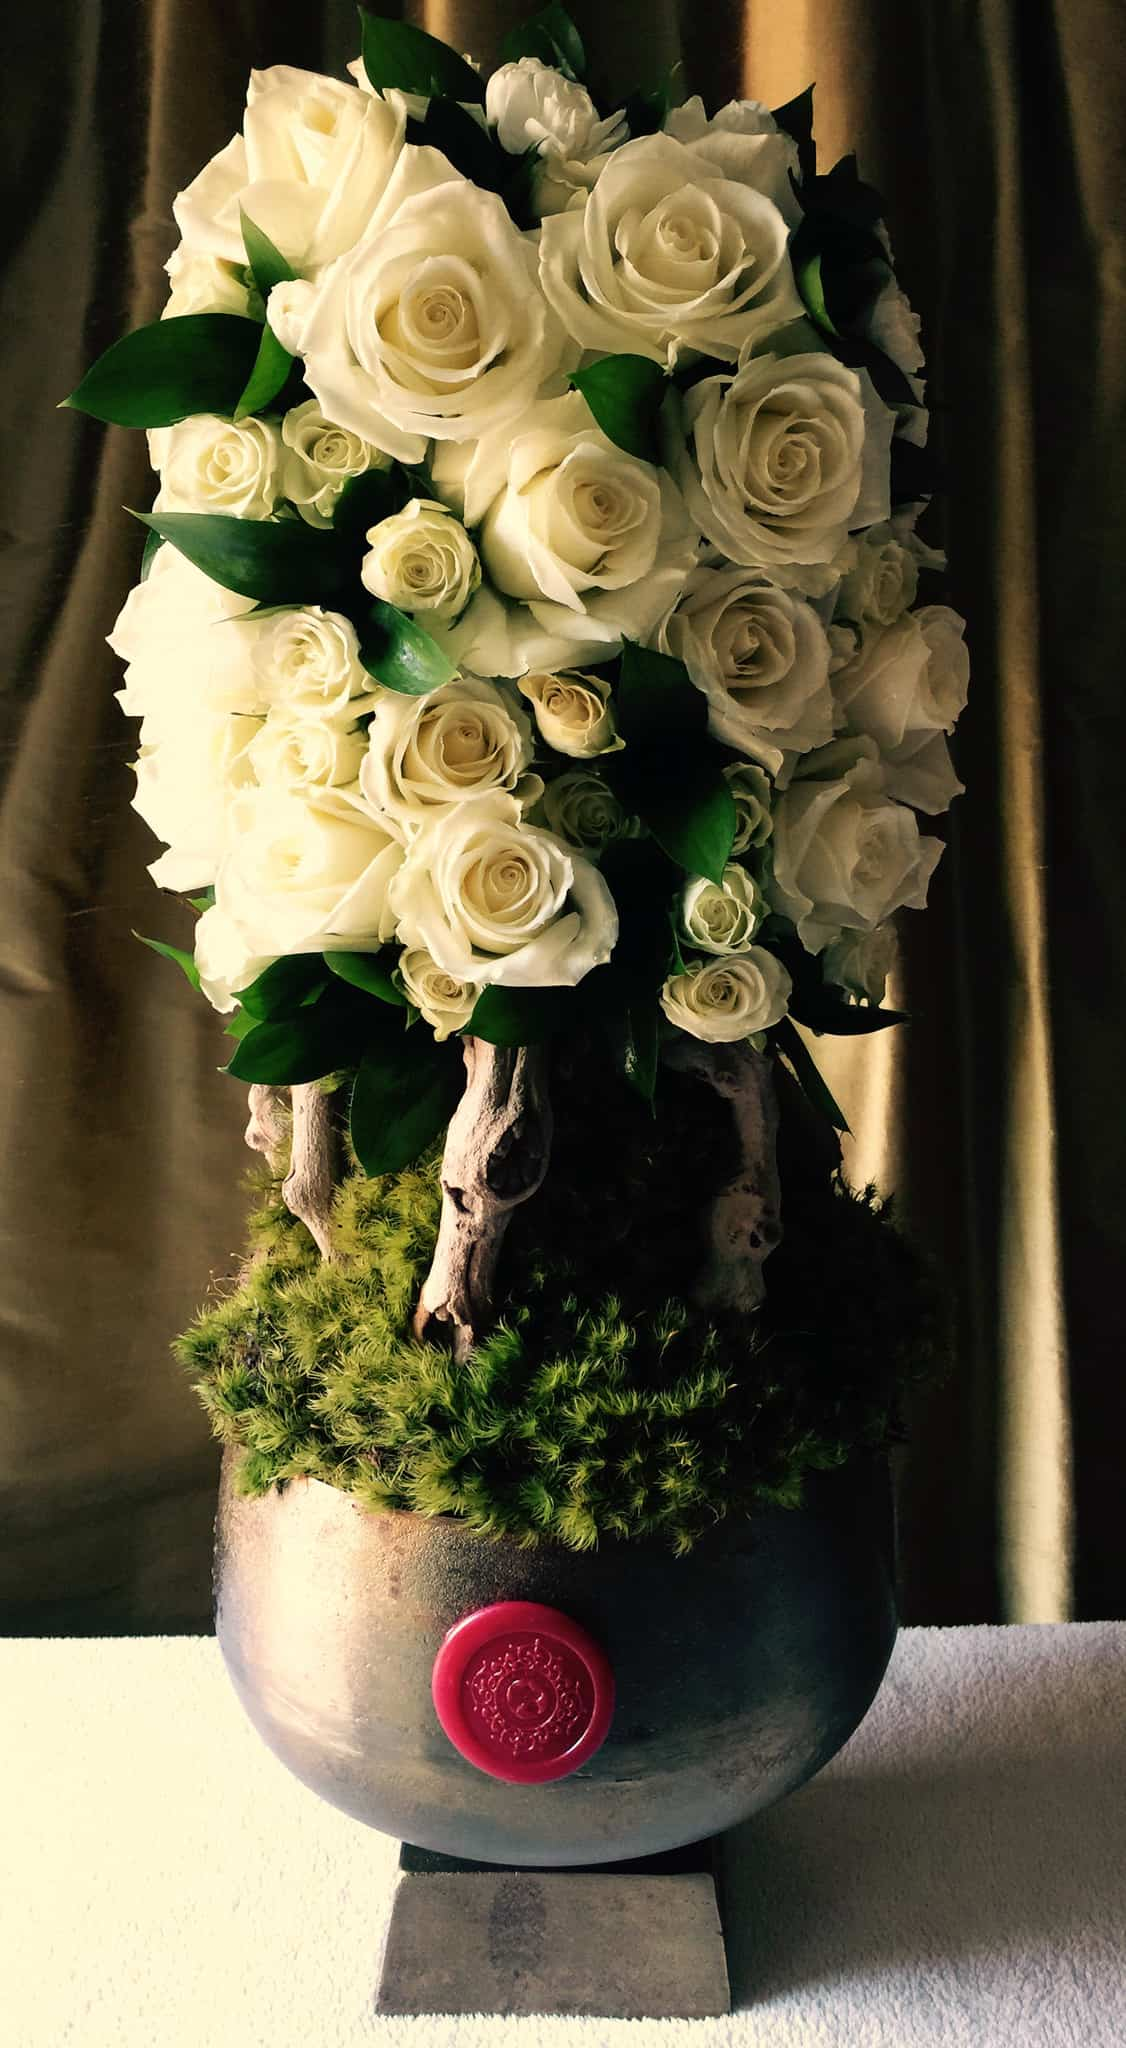 Elegant mix of white roses, white spray roses, exotic wood and foliage replicating a topiary